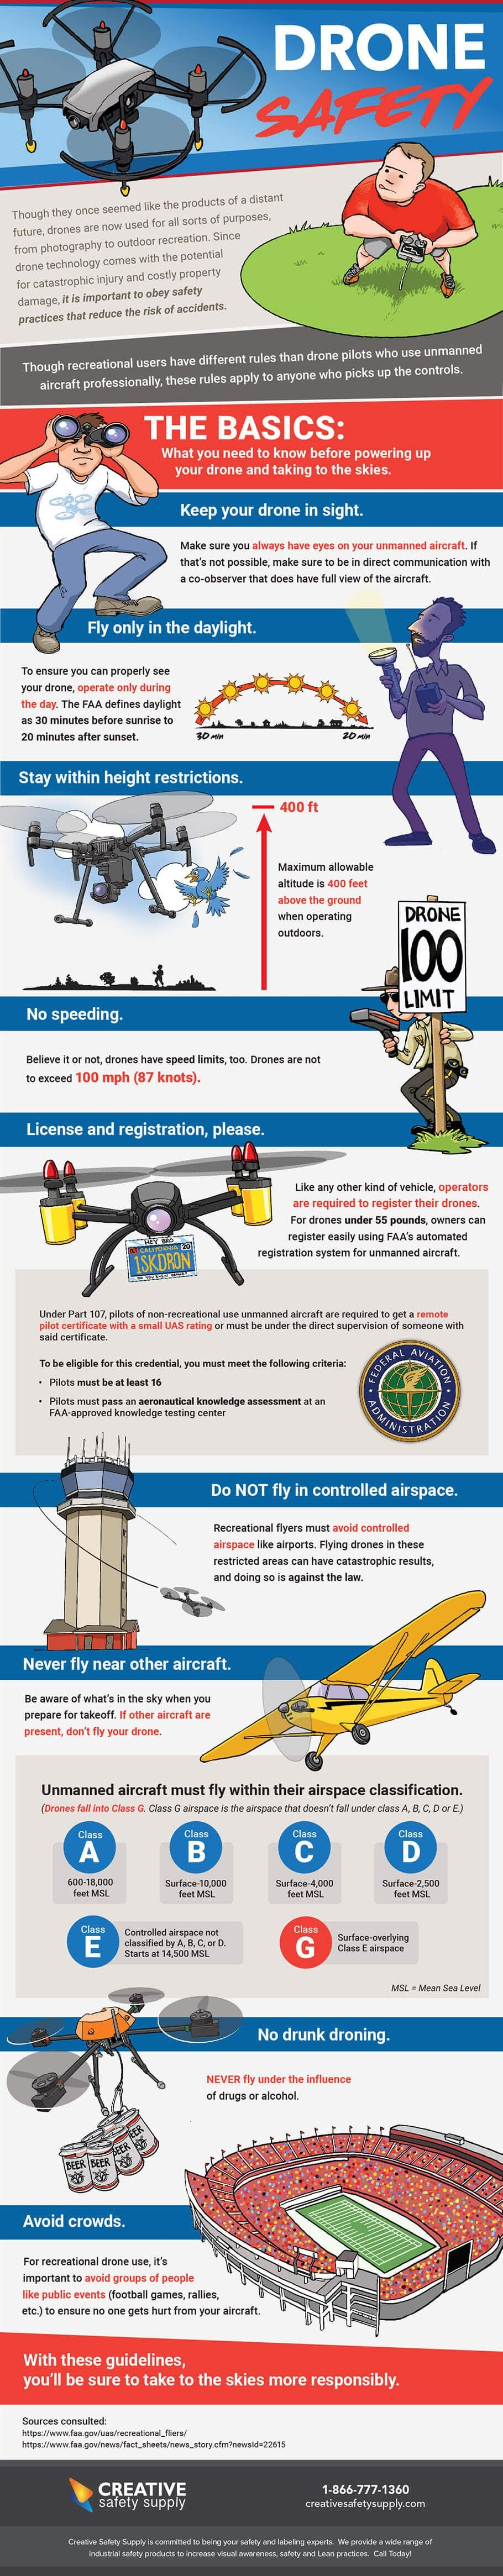 Tips for Drone Safety